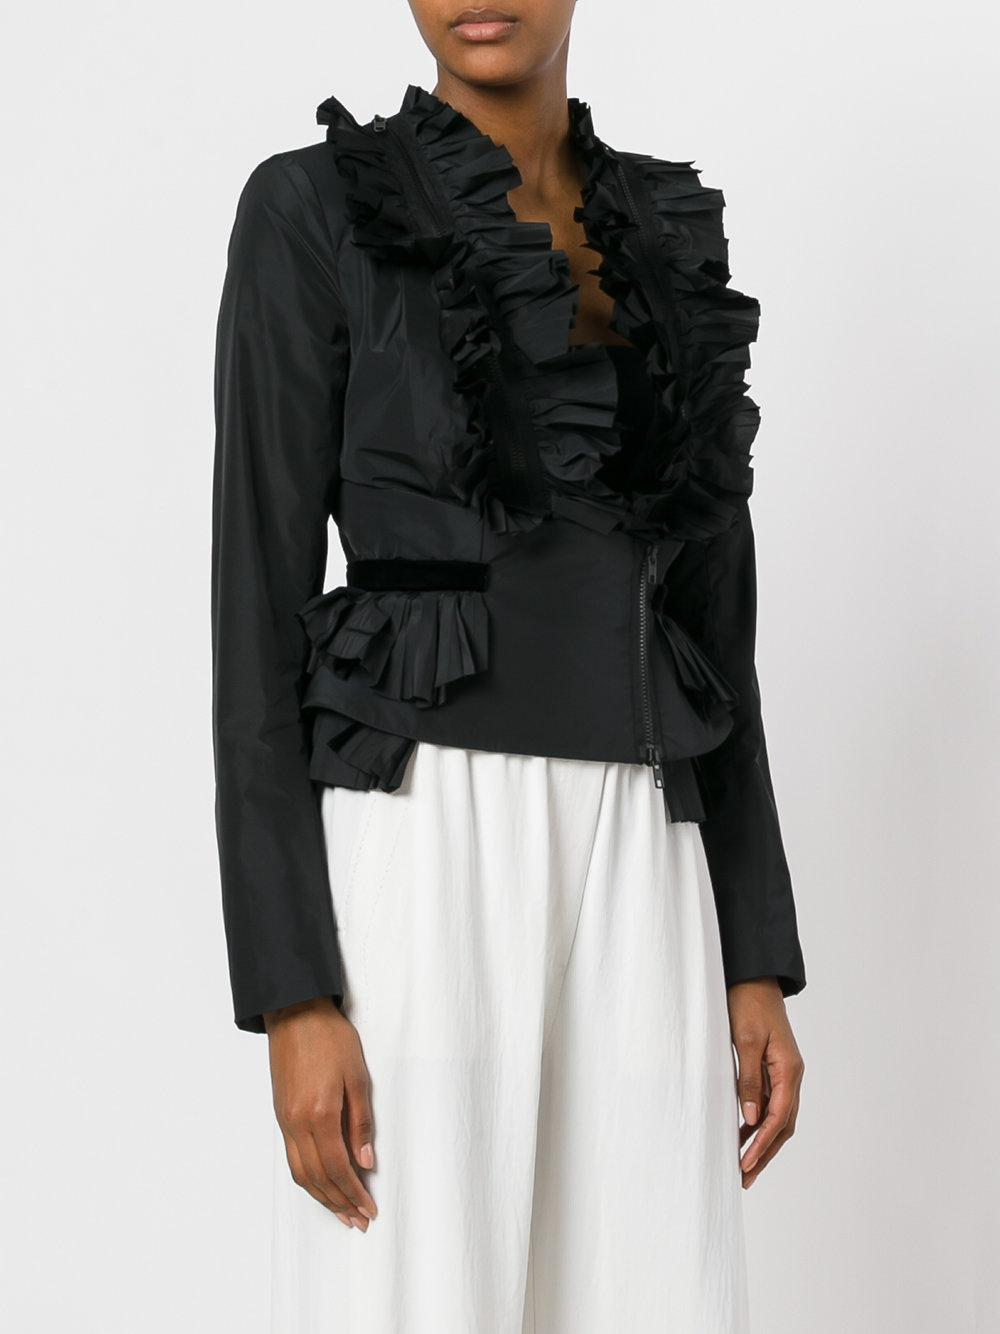 345102ae26e Lyst - Givenchy Frill Zip-up Blouse in Black